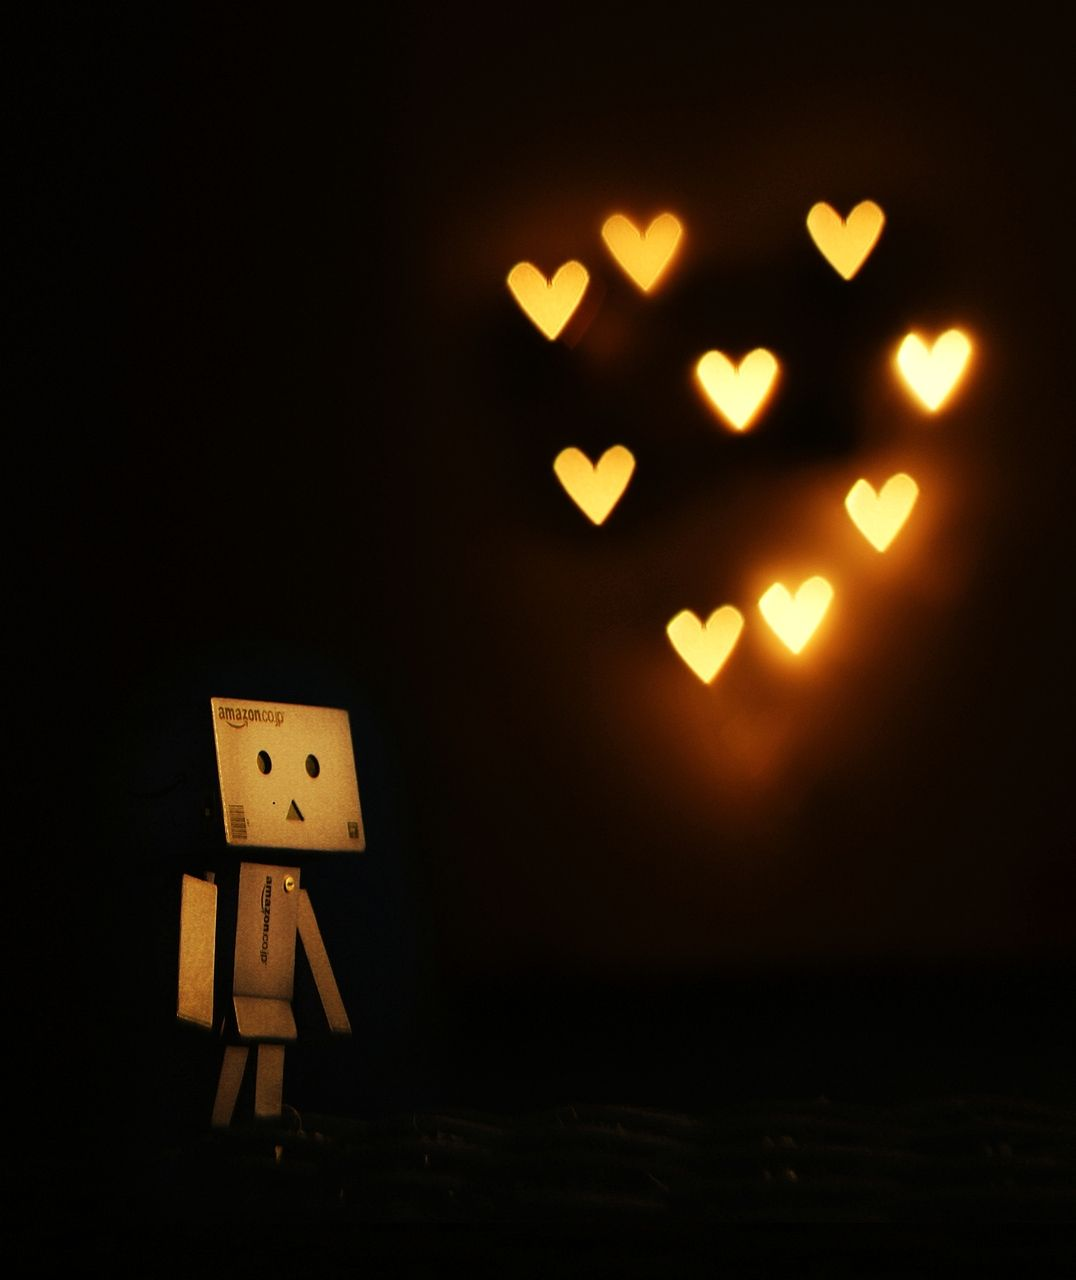 Love Is In The Air Corazon Pinterest Danbo